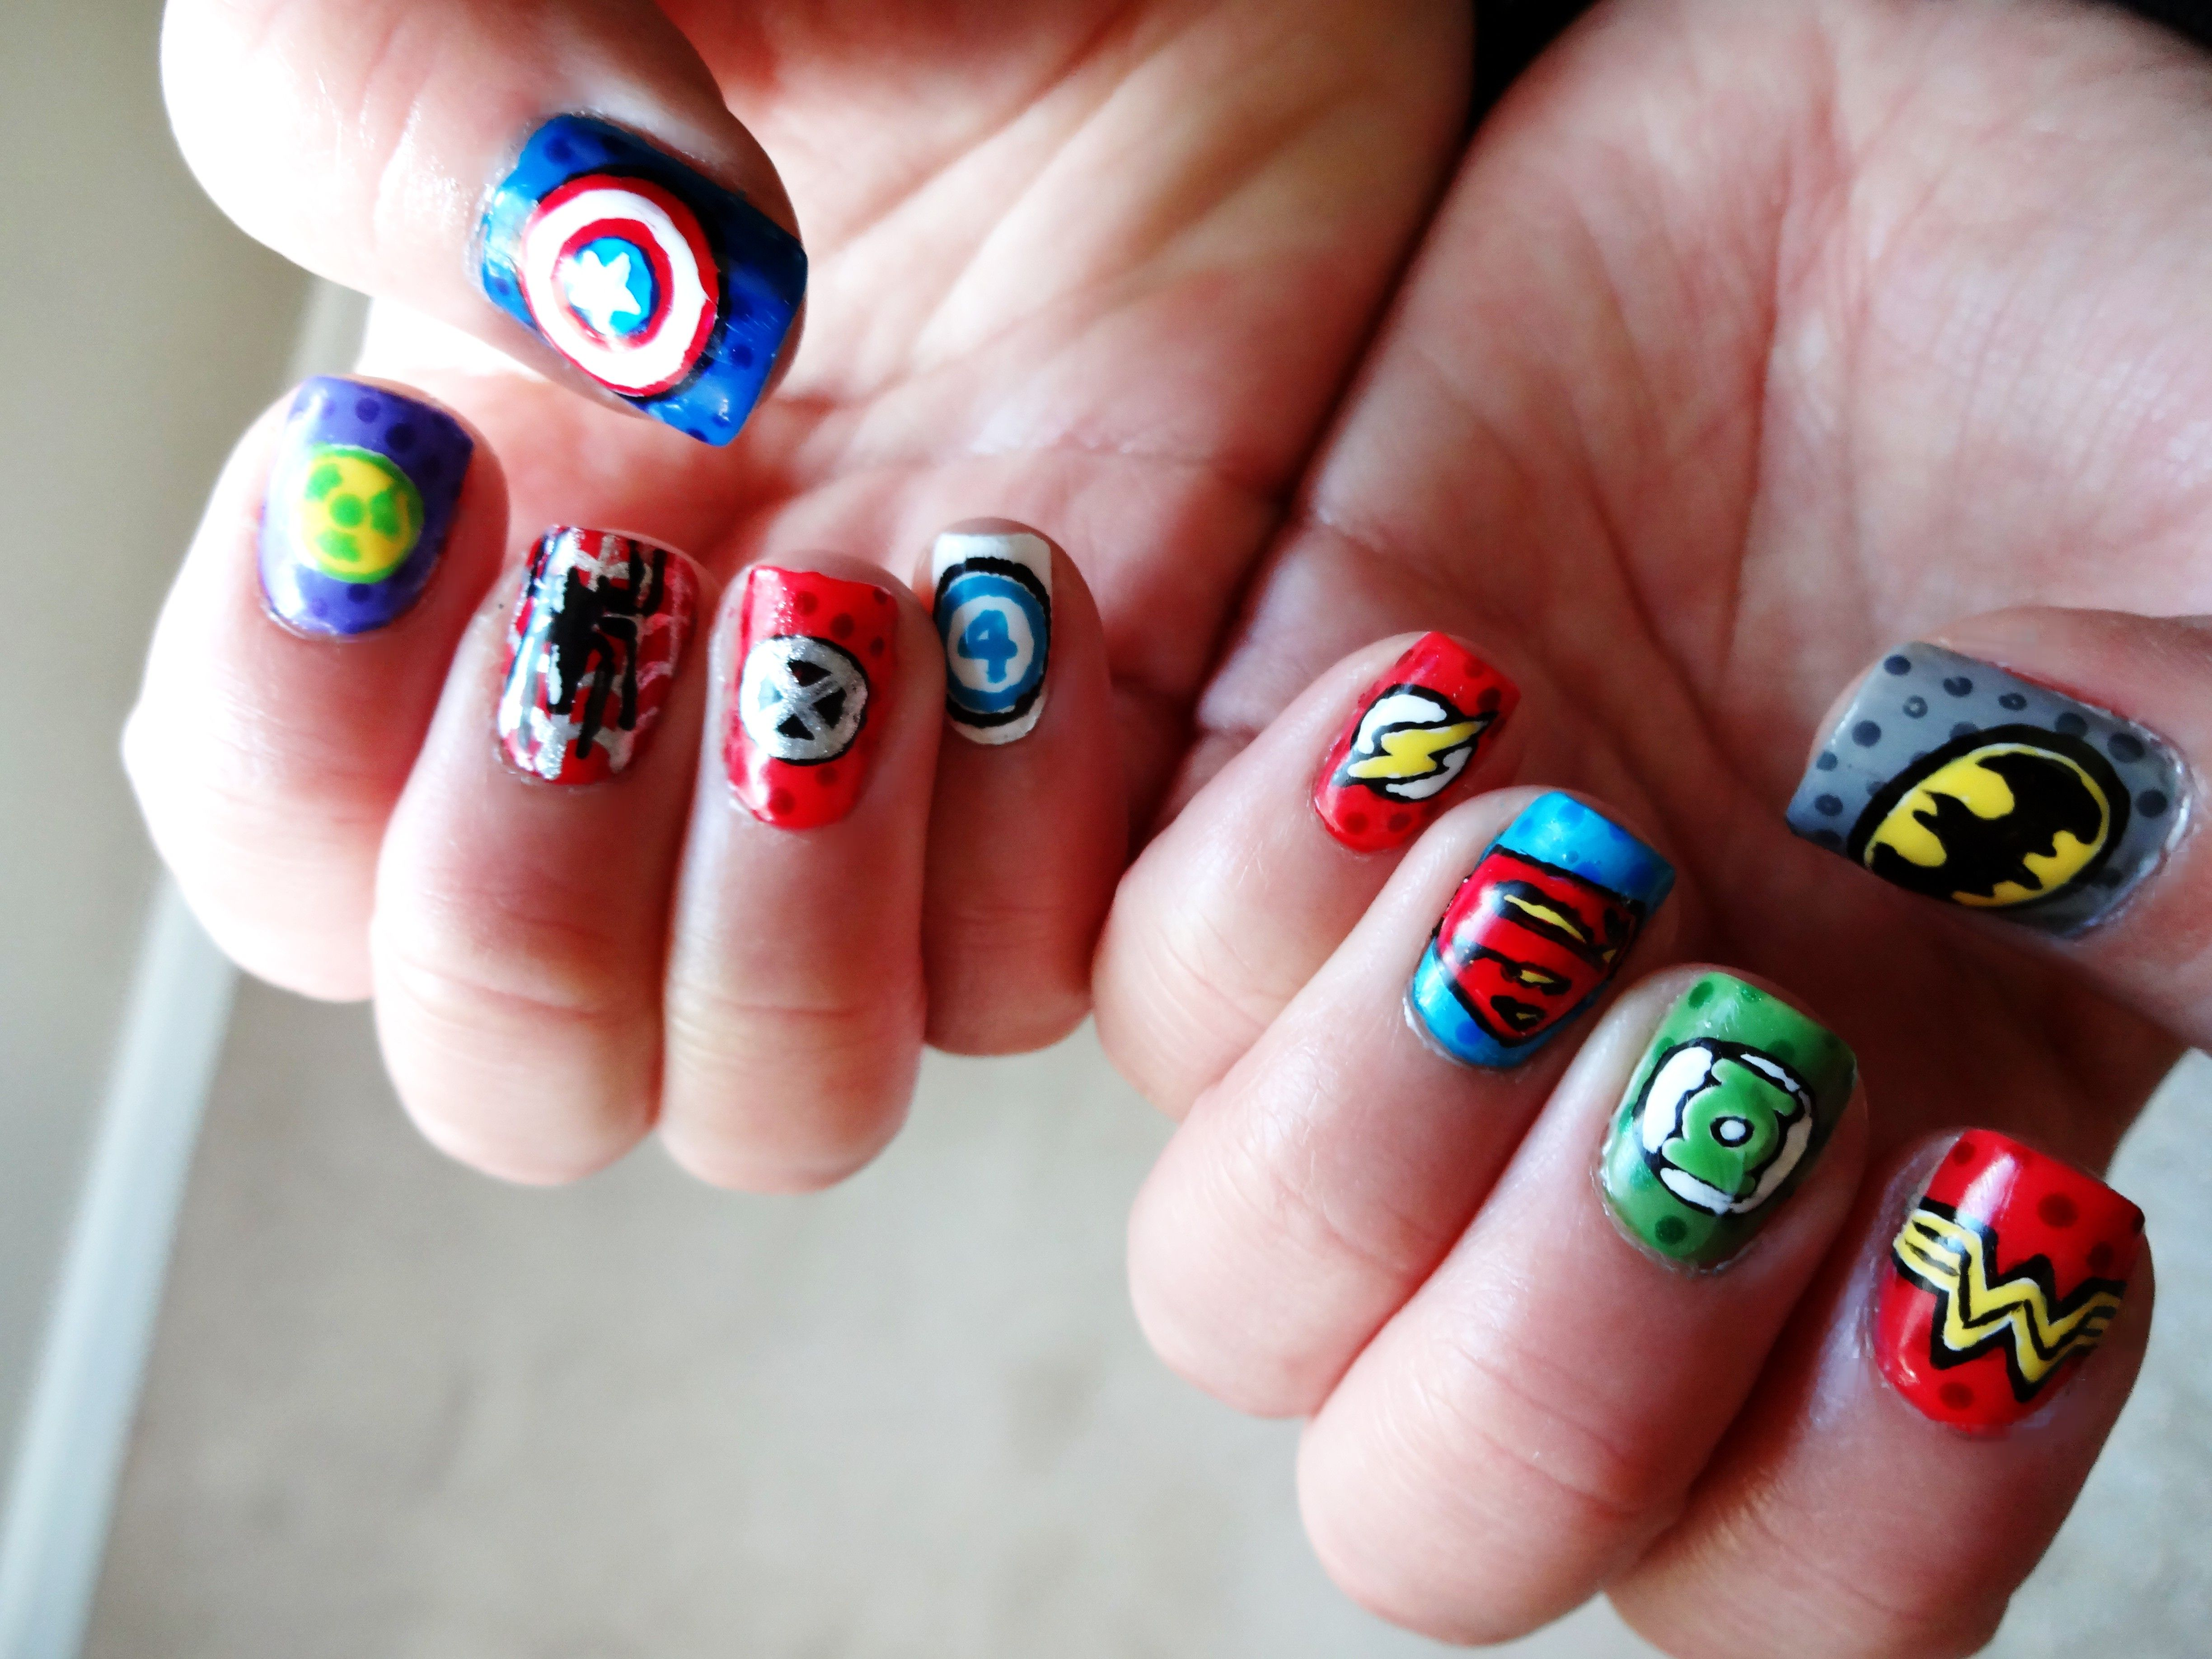 Comic nail art dc vs marvel marvel nails thumb to pinkie comic nail art dc vs marvel marvel nails thumb to pinkie captain america hulk spiderman x men and fantastic four dc nails batman wonder woman prinsesfo Image collections